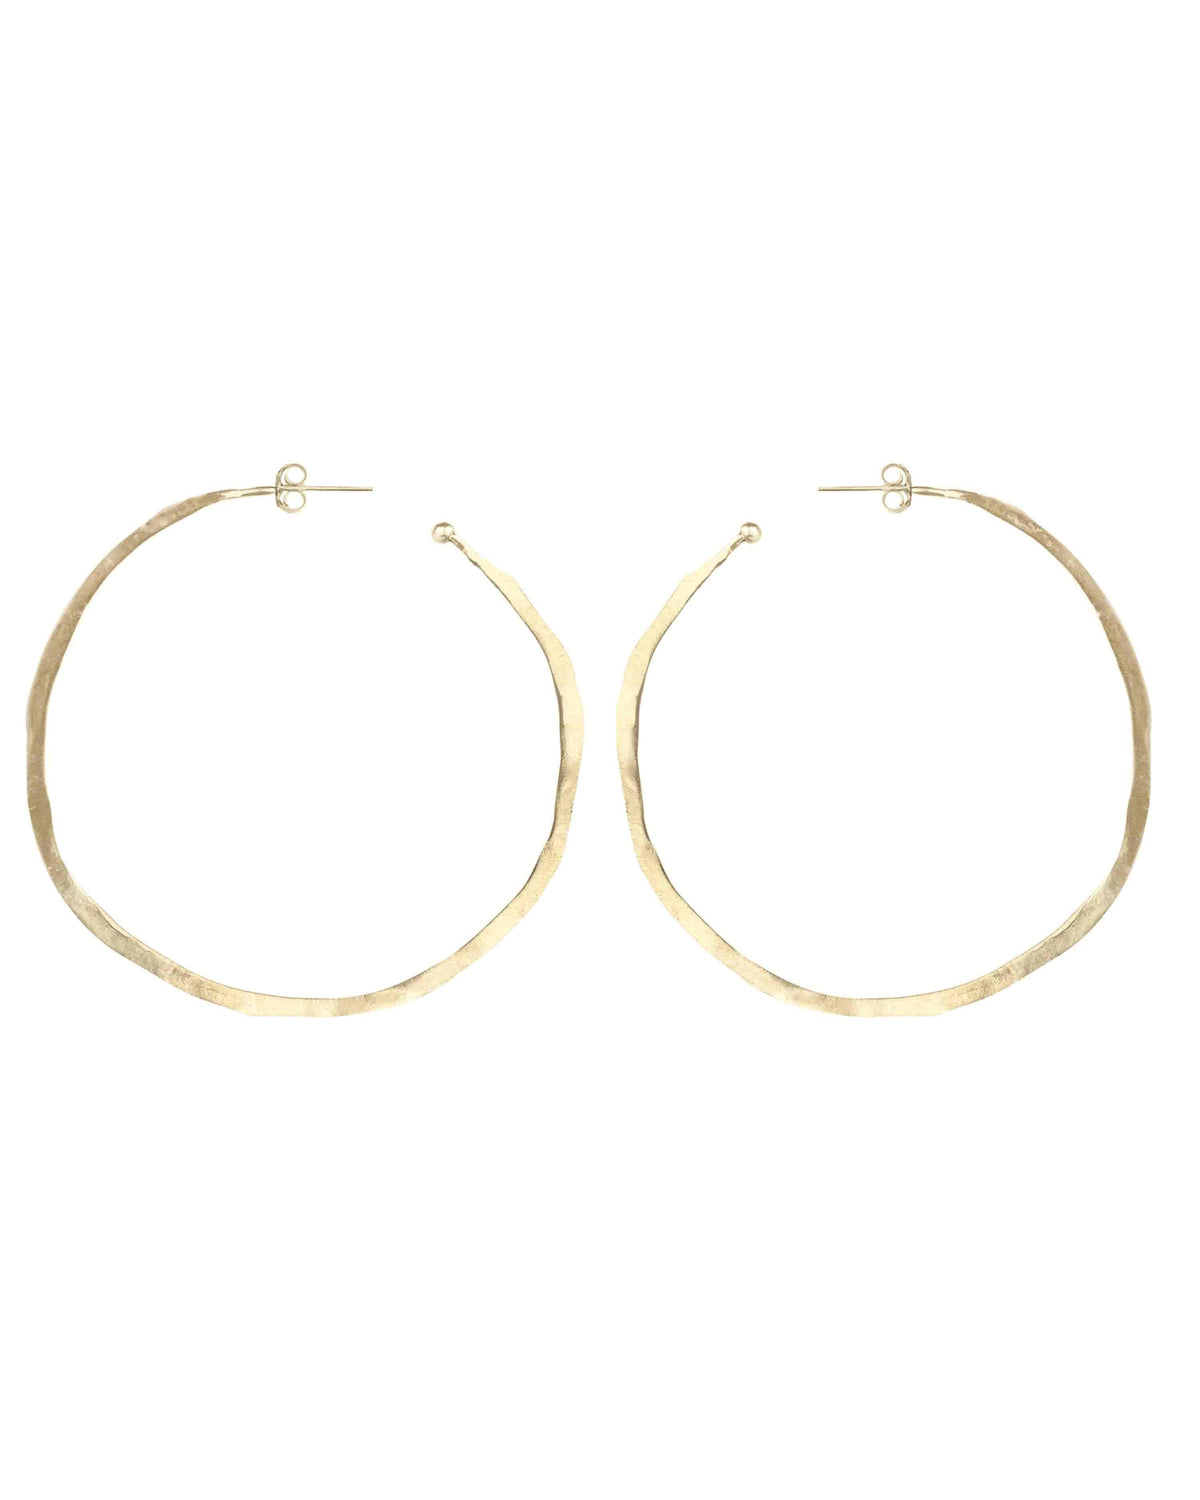 TAPERED THIN HOOPS